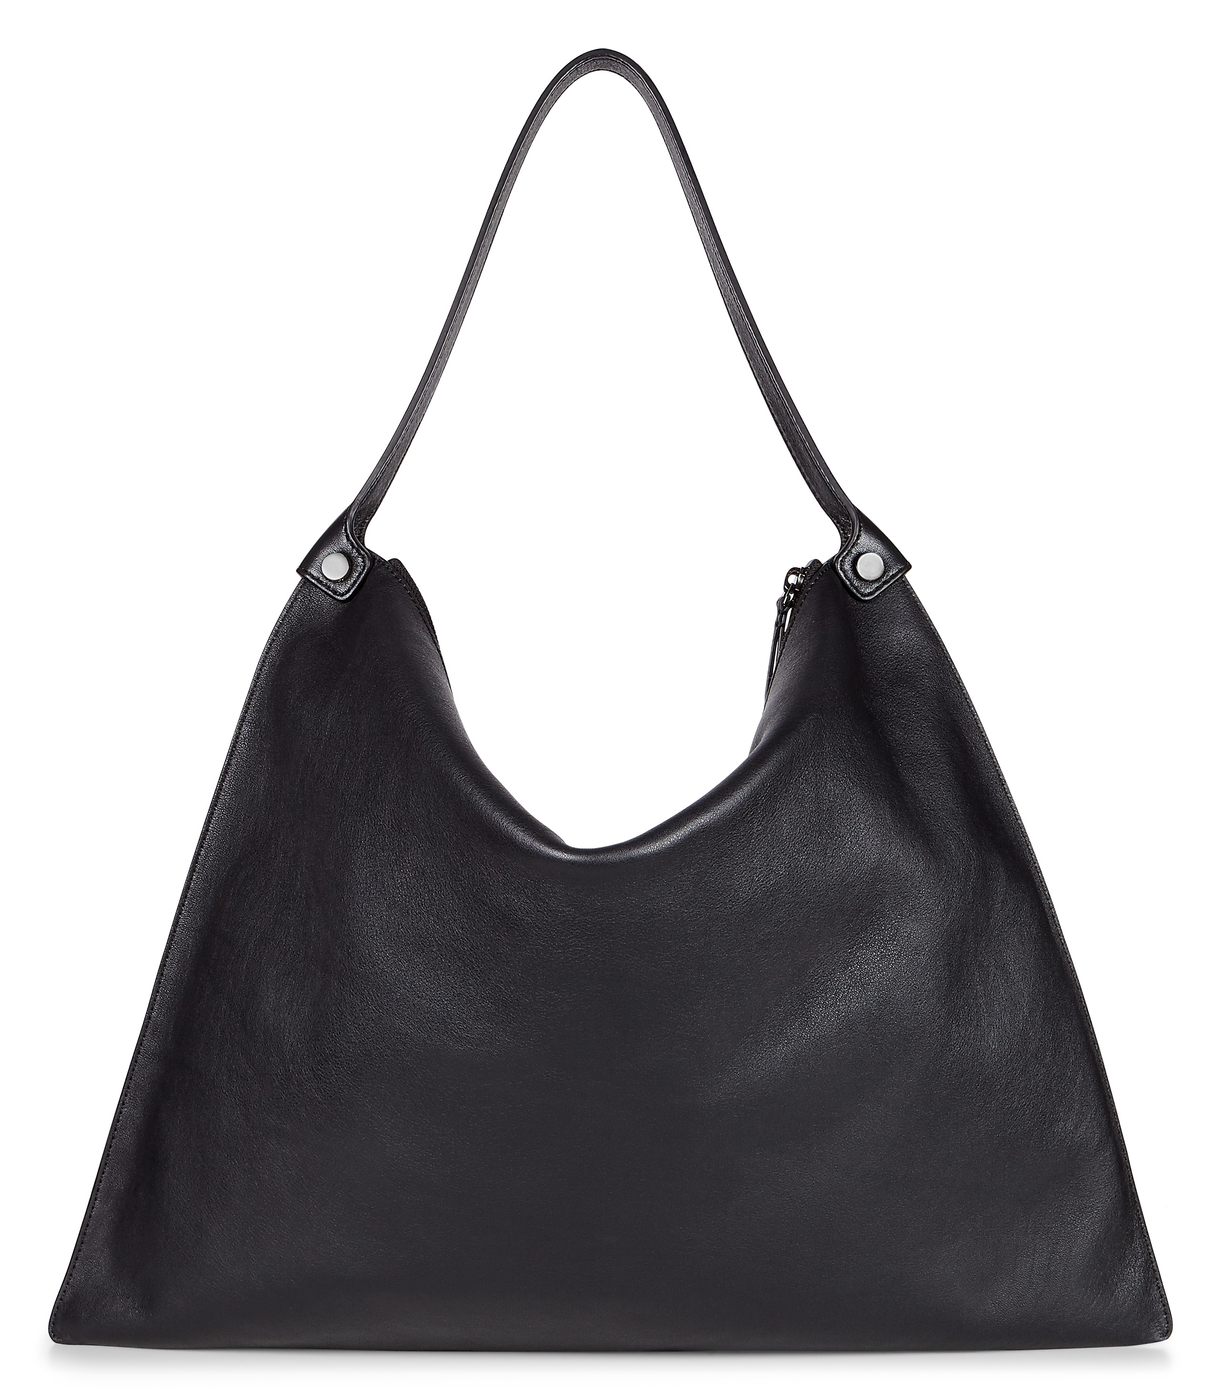 aaa06ddd6295 ECCO Sculptured Shoulder Bag